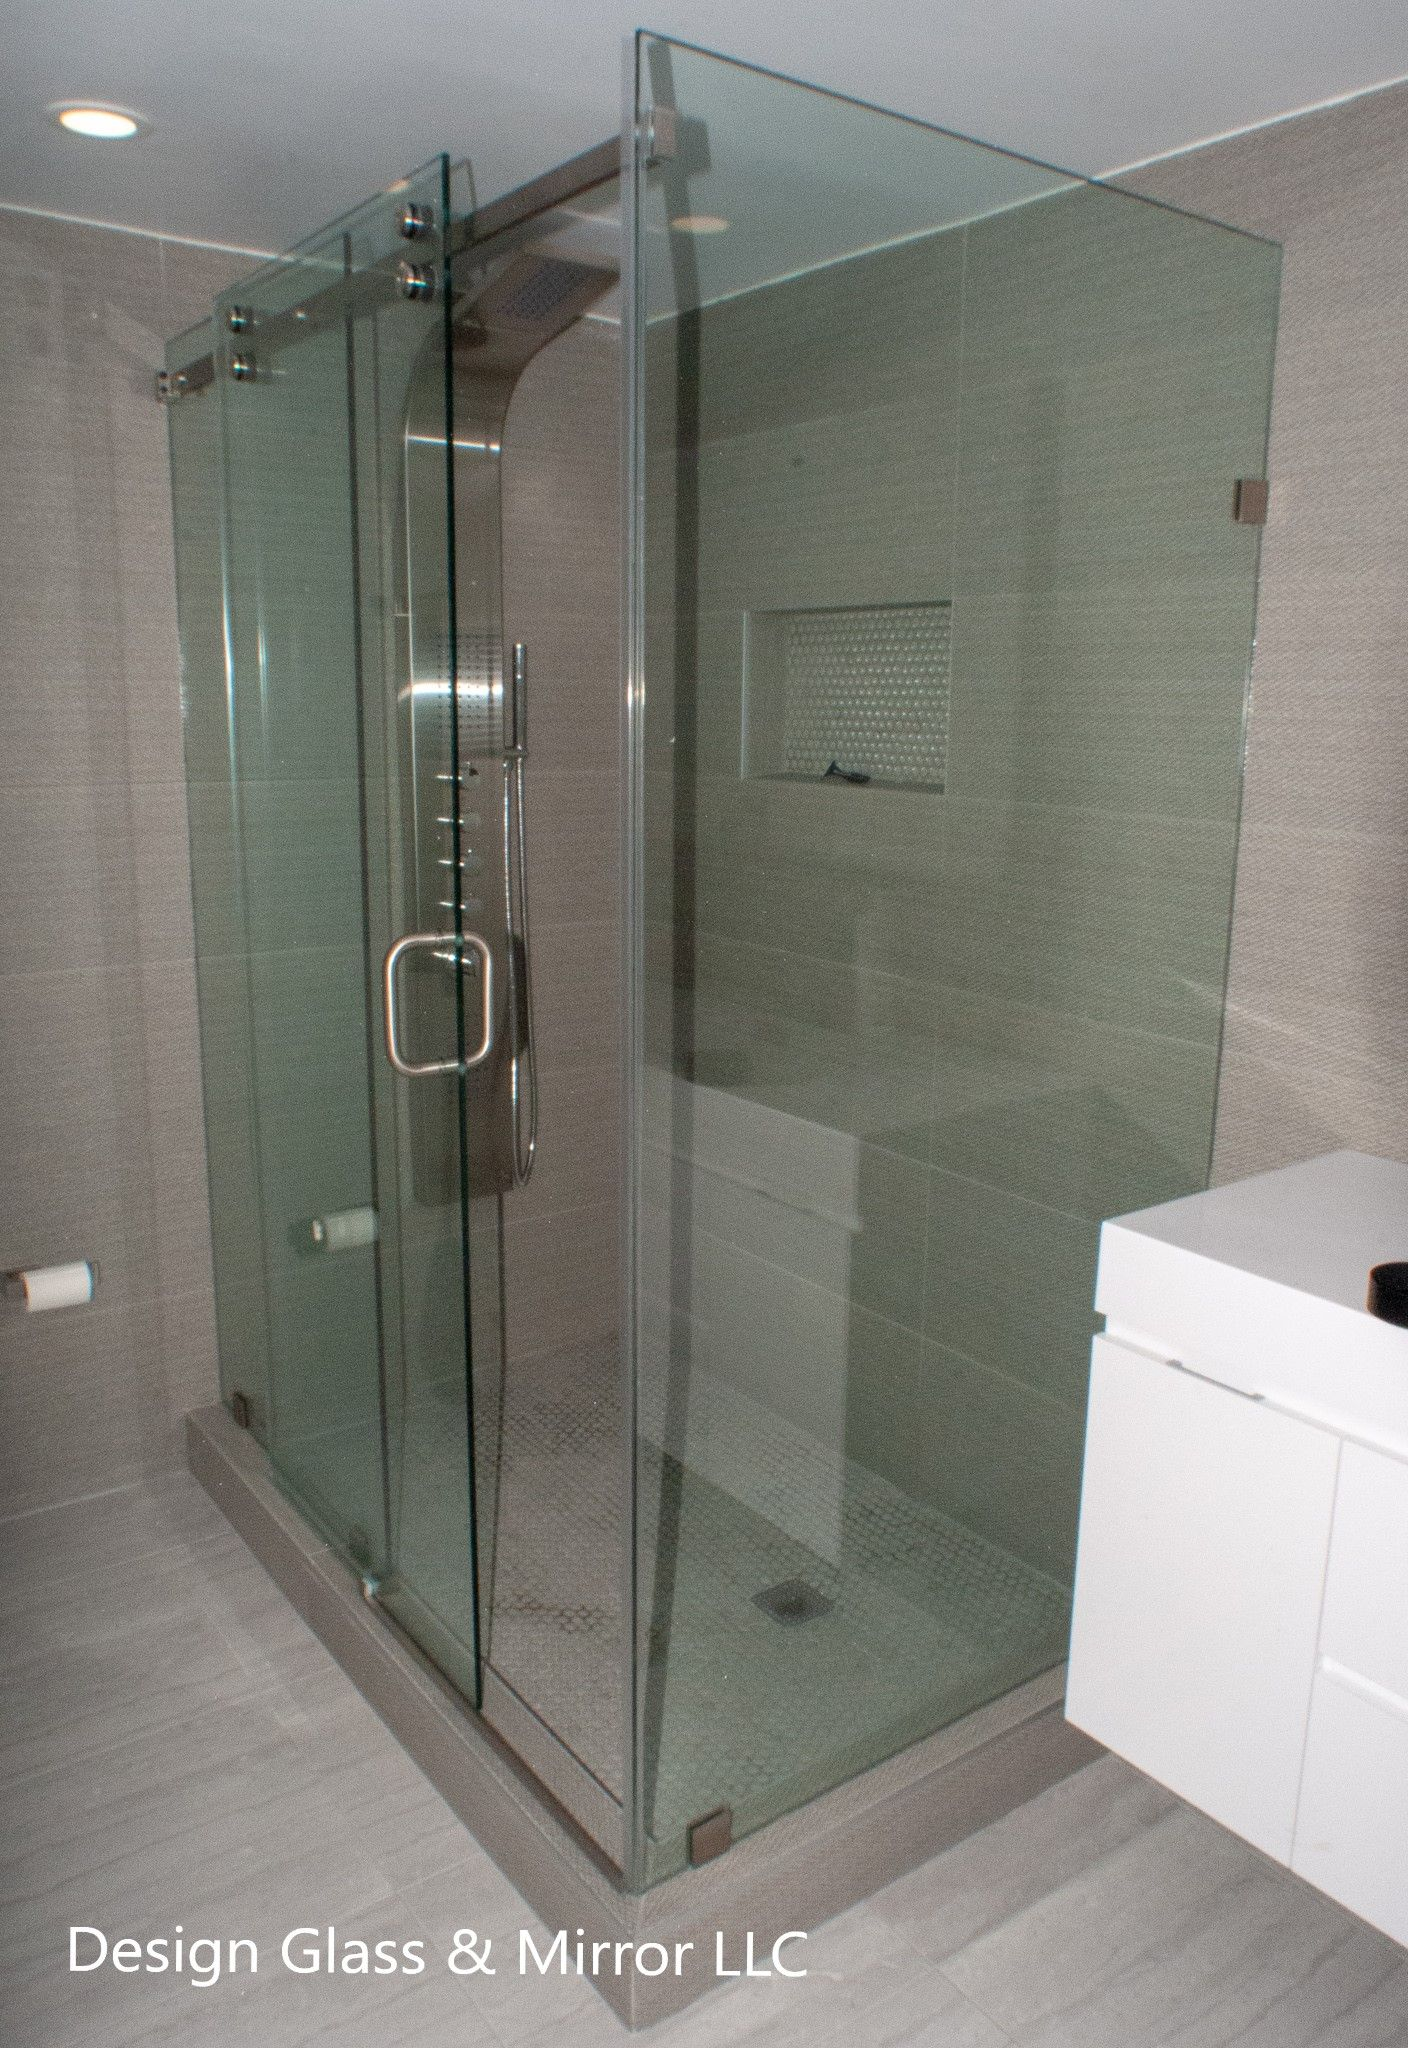 90 Degree Shower Enclosure With Sliding Door And Clips 90 Degree